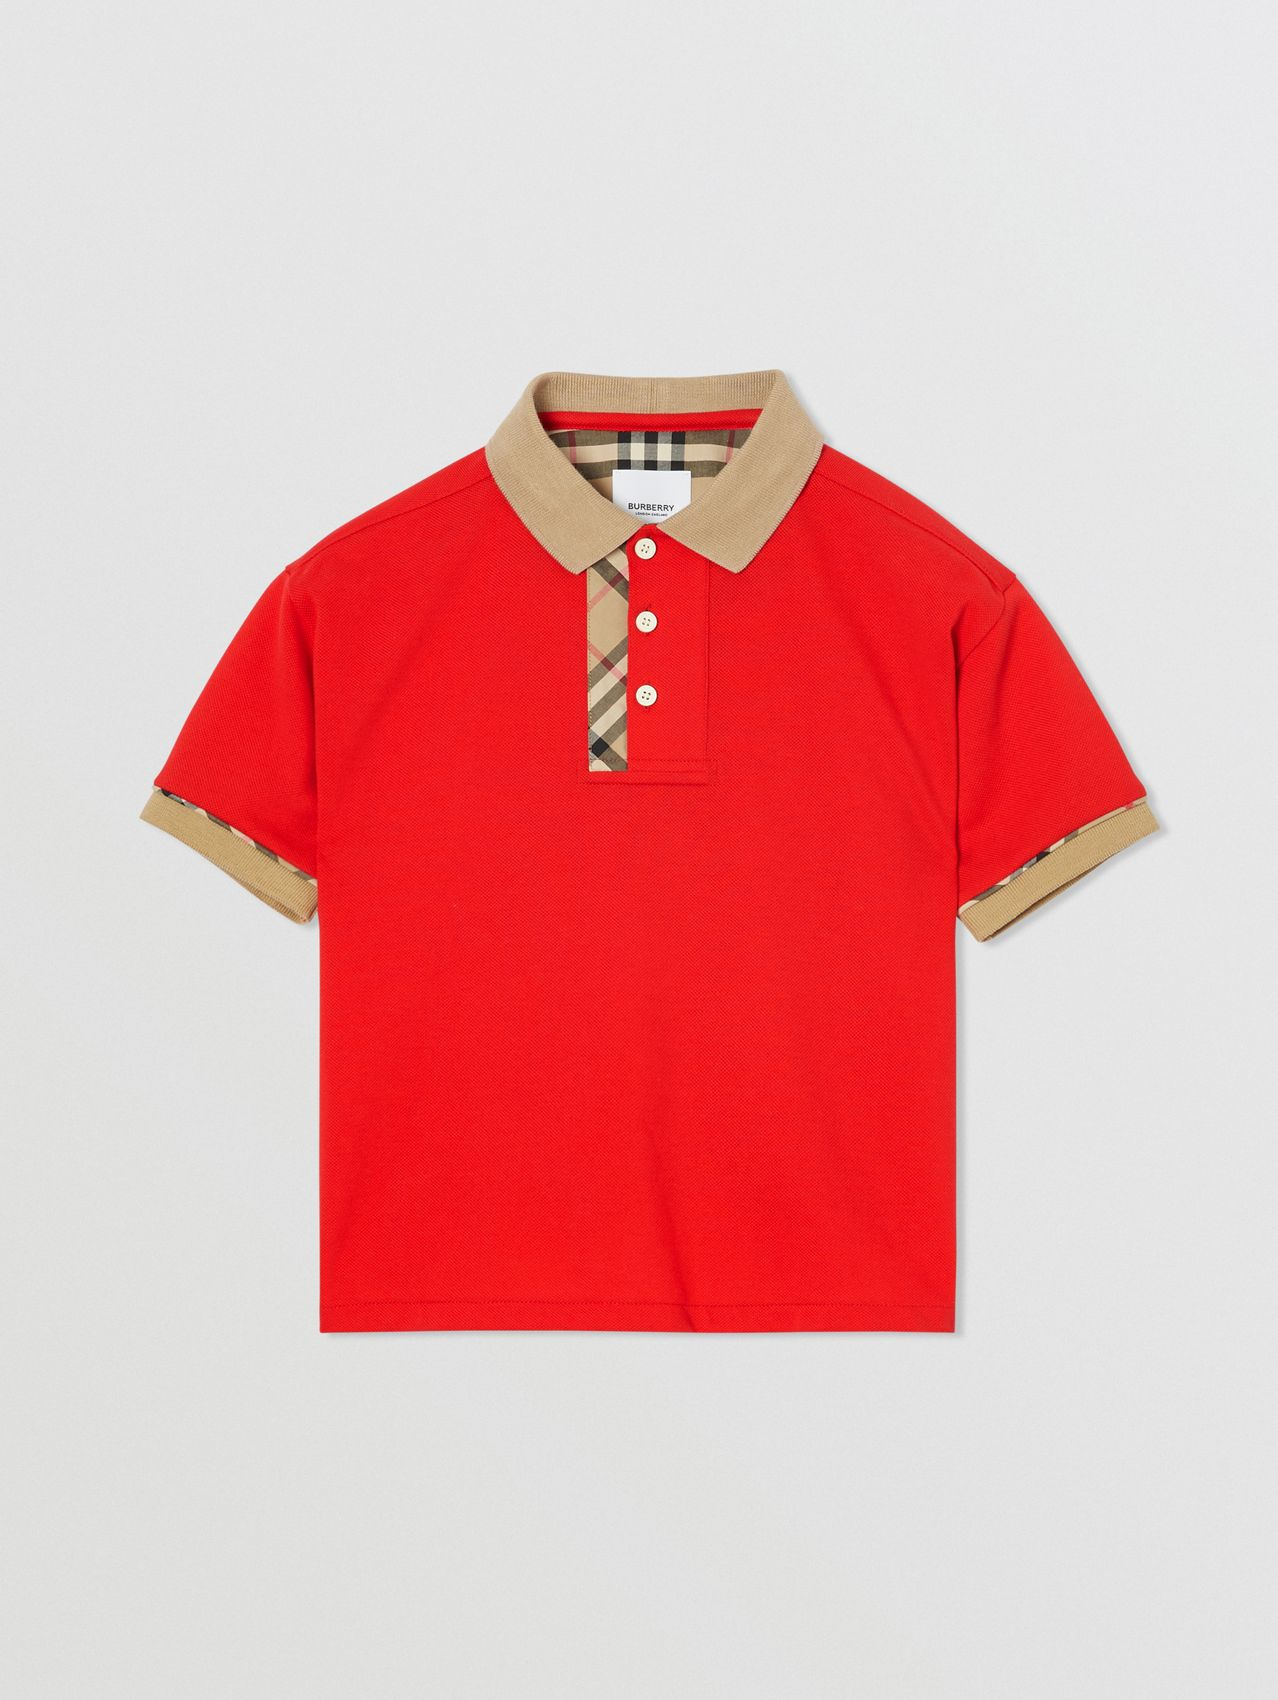 Vintage Check Trim Cotton Polo Shirt (Bright Red)